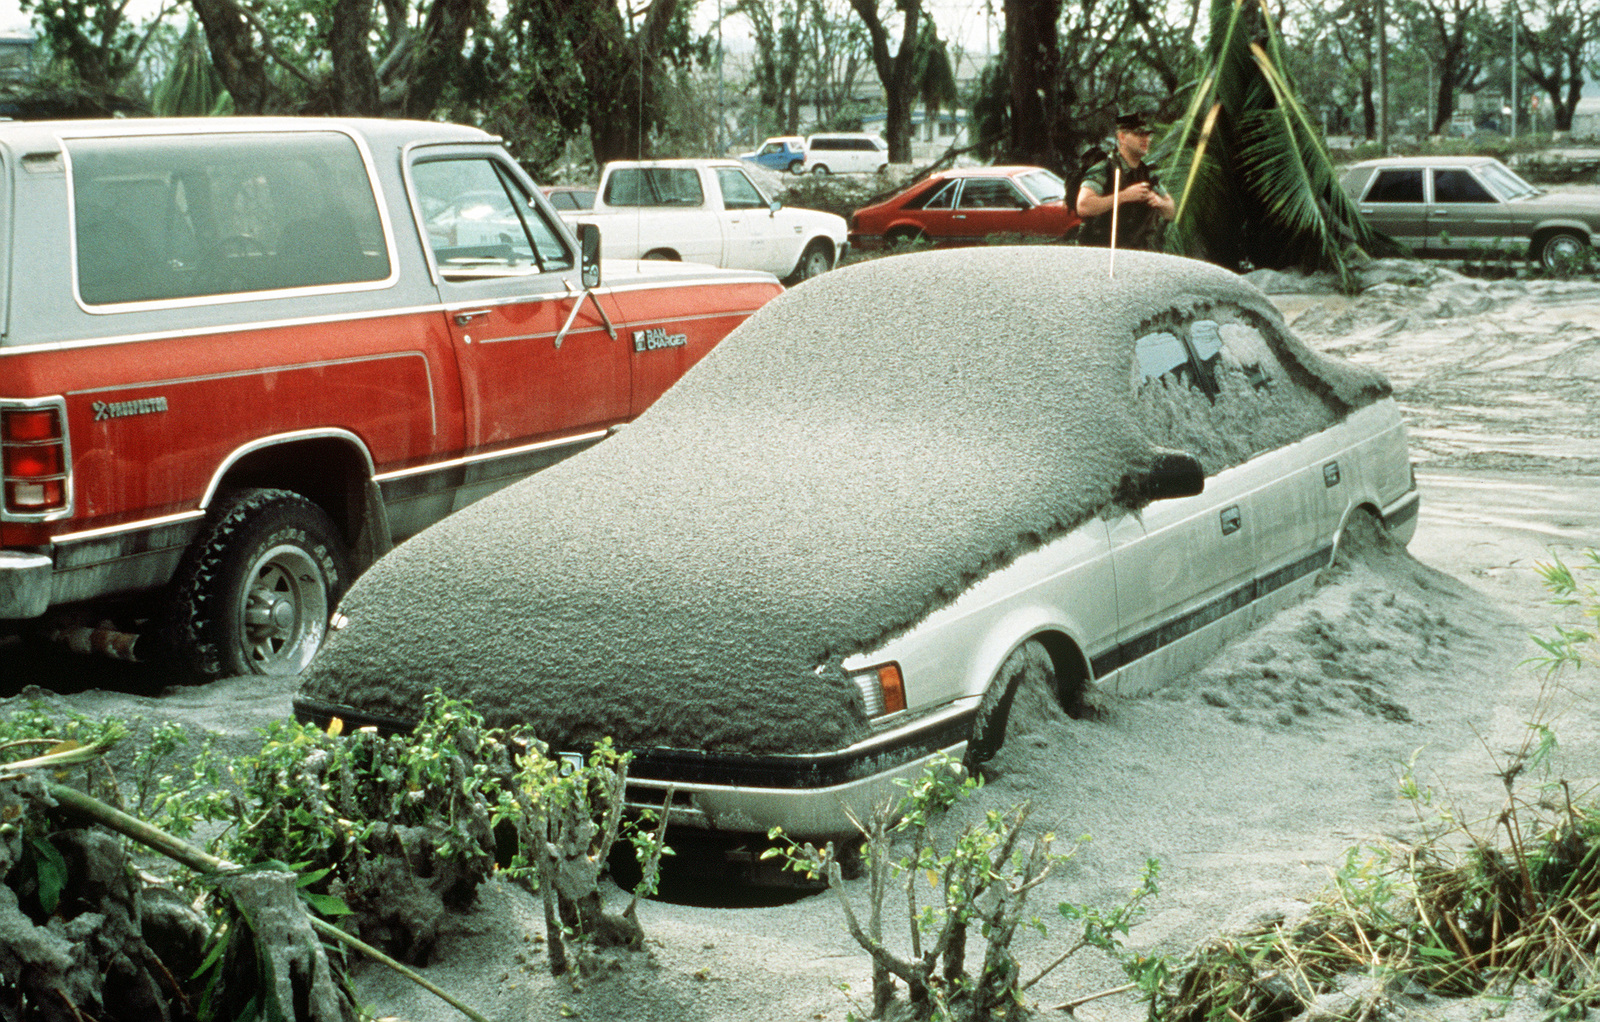 Ash covers a vehicle following the eruption of Mount Pinatubo, a volcano that came alive for the first time in over 600 years. More than 20,000 evacuees have been removed from the area as part of the U.S. military's Operation Fiery Vigil